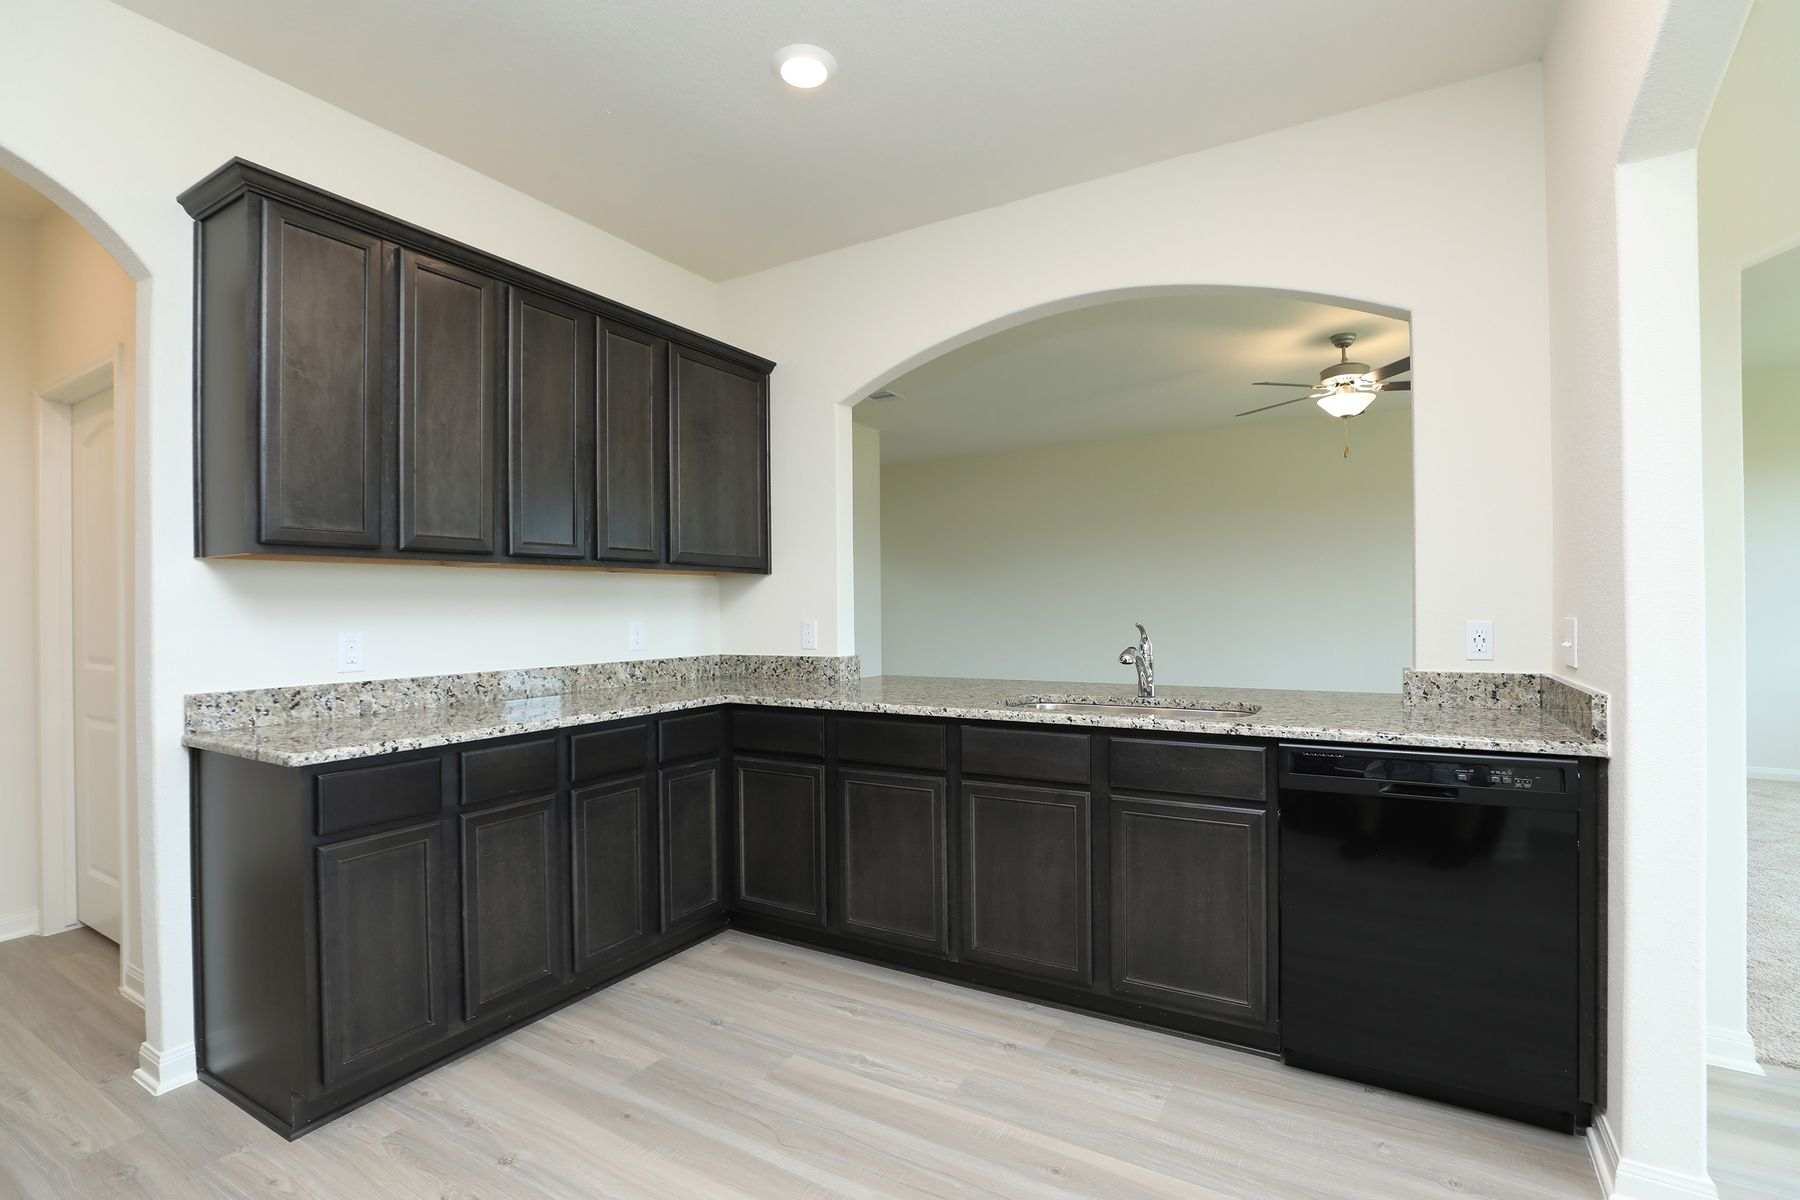 Kitchen featured in the Rayburn By LGI Homes in Houston, TX